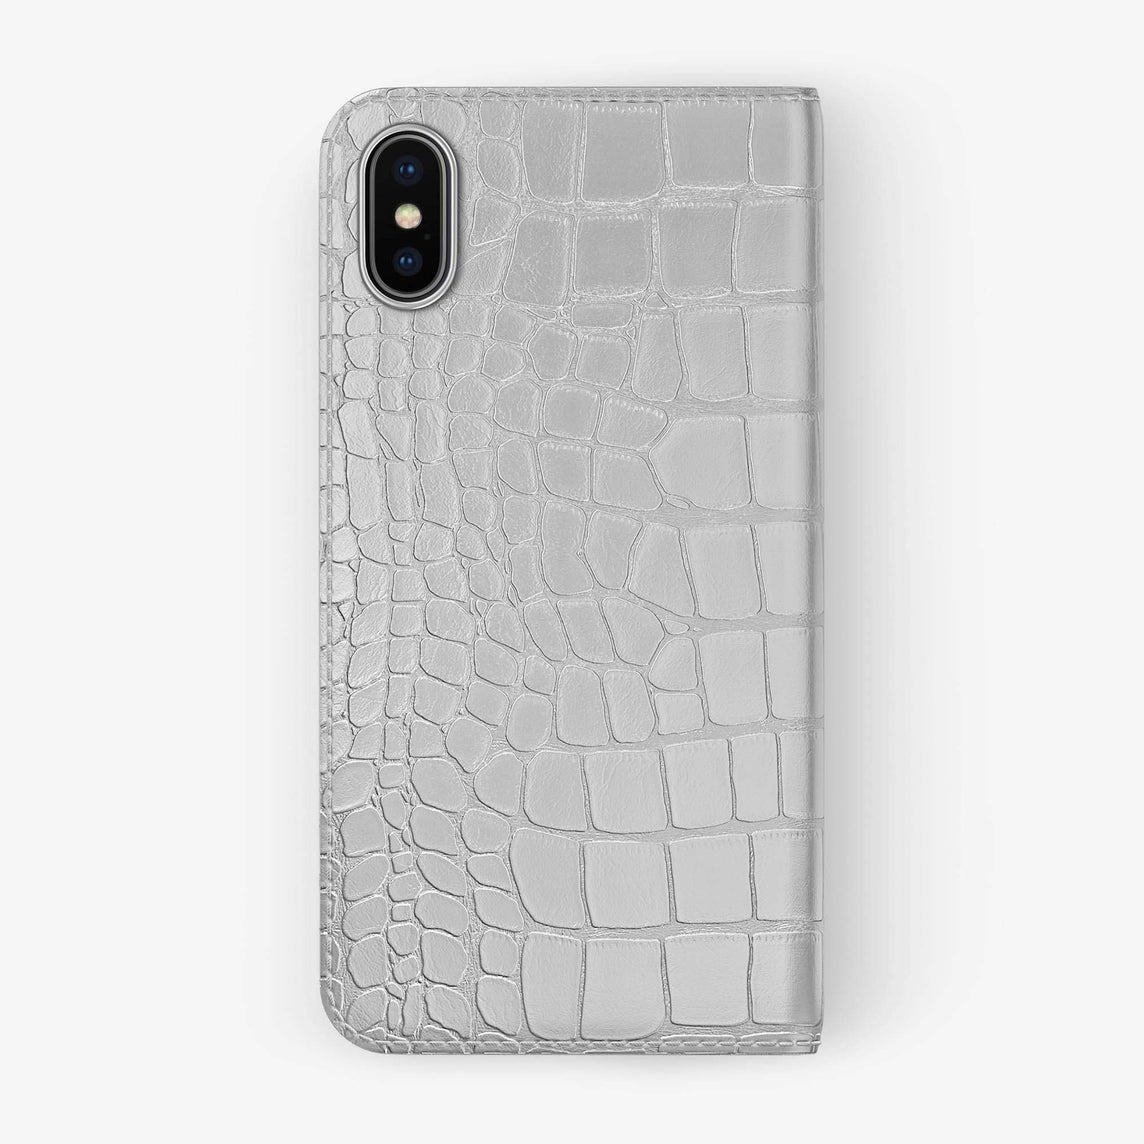 White Alligator iPhone Folio Case for iPhone XS Max finishing stainless steel - Hadoro Luxury Cases